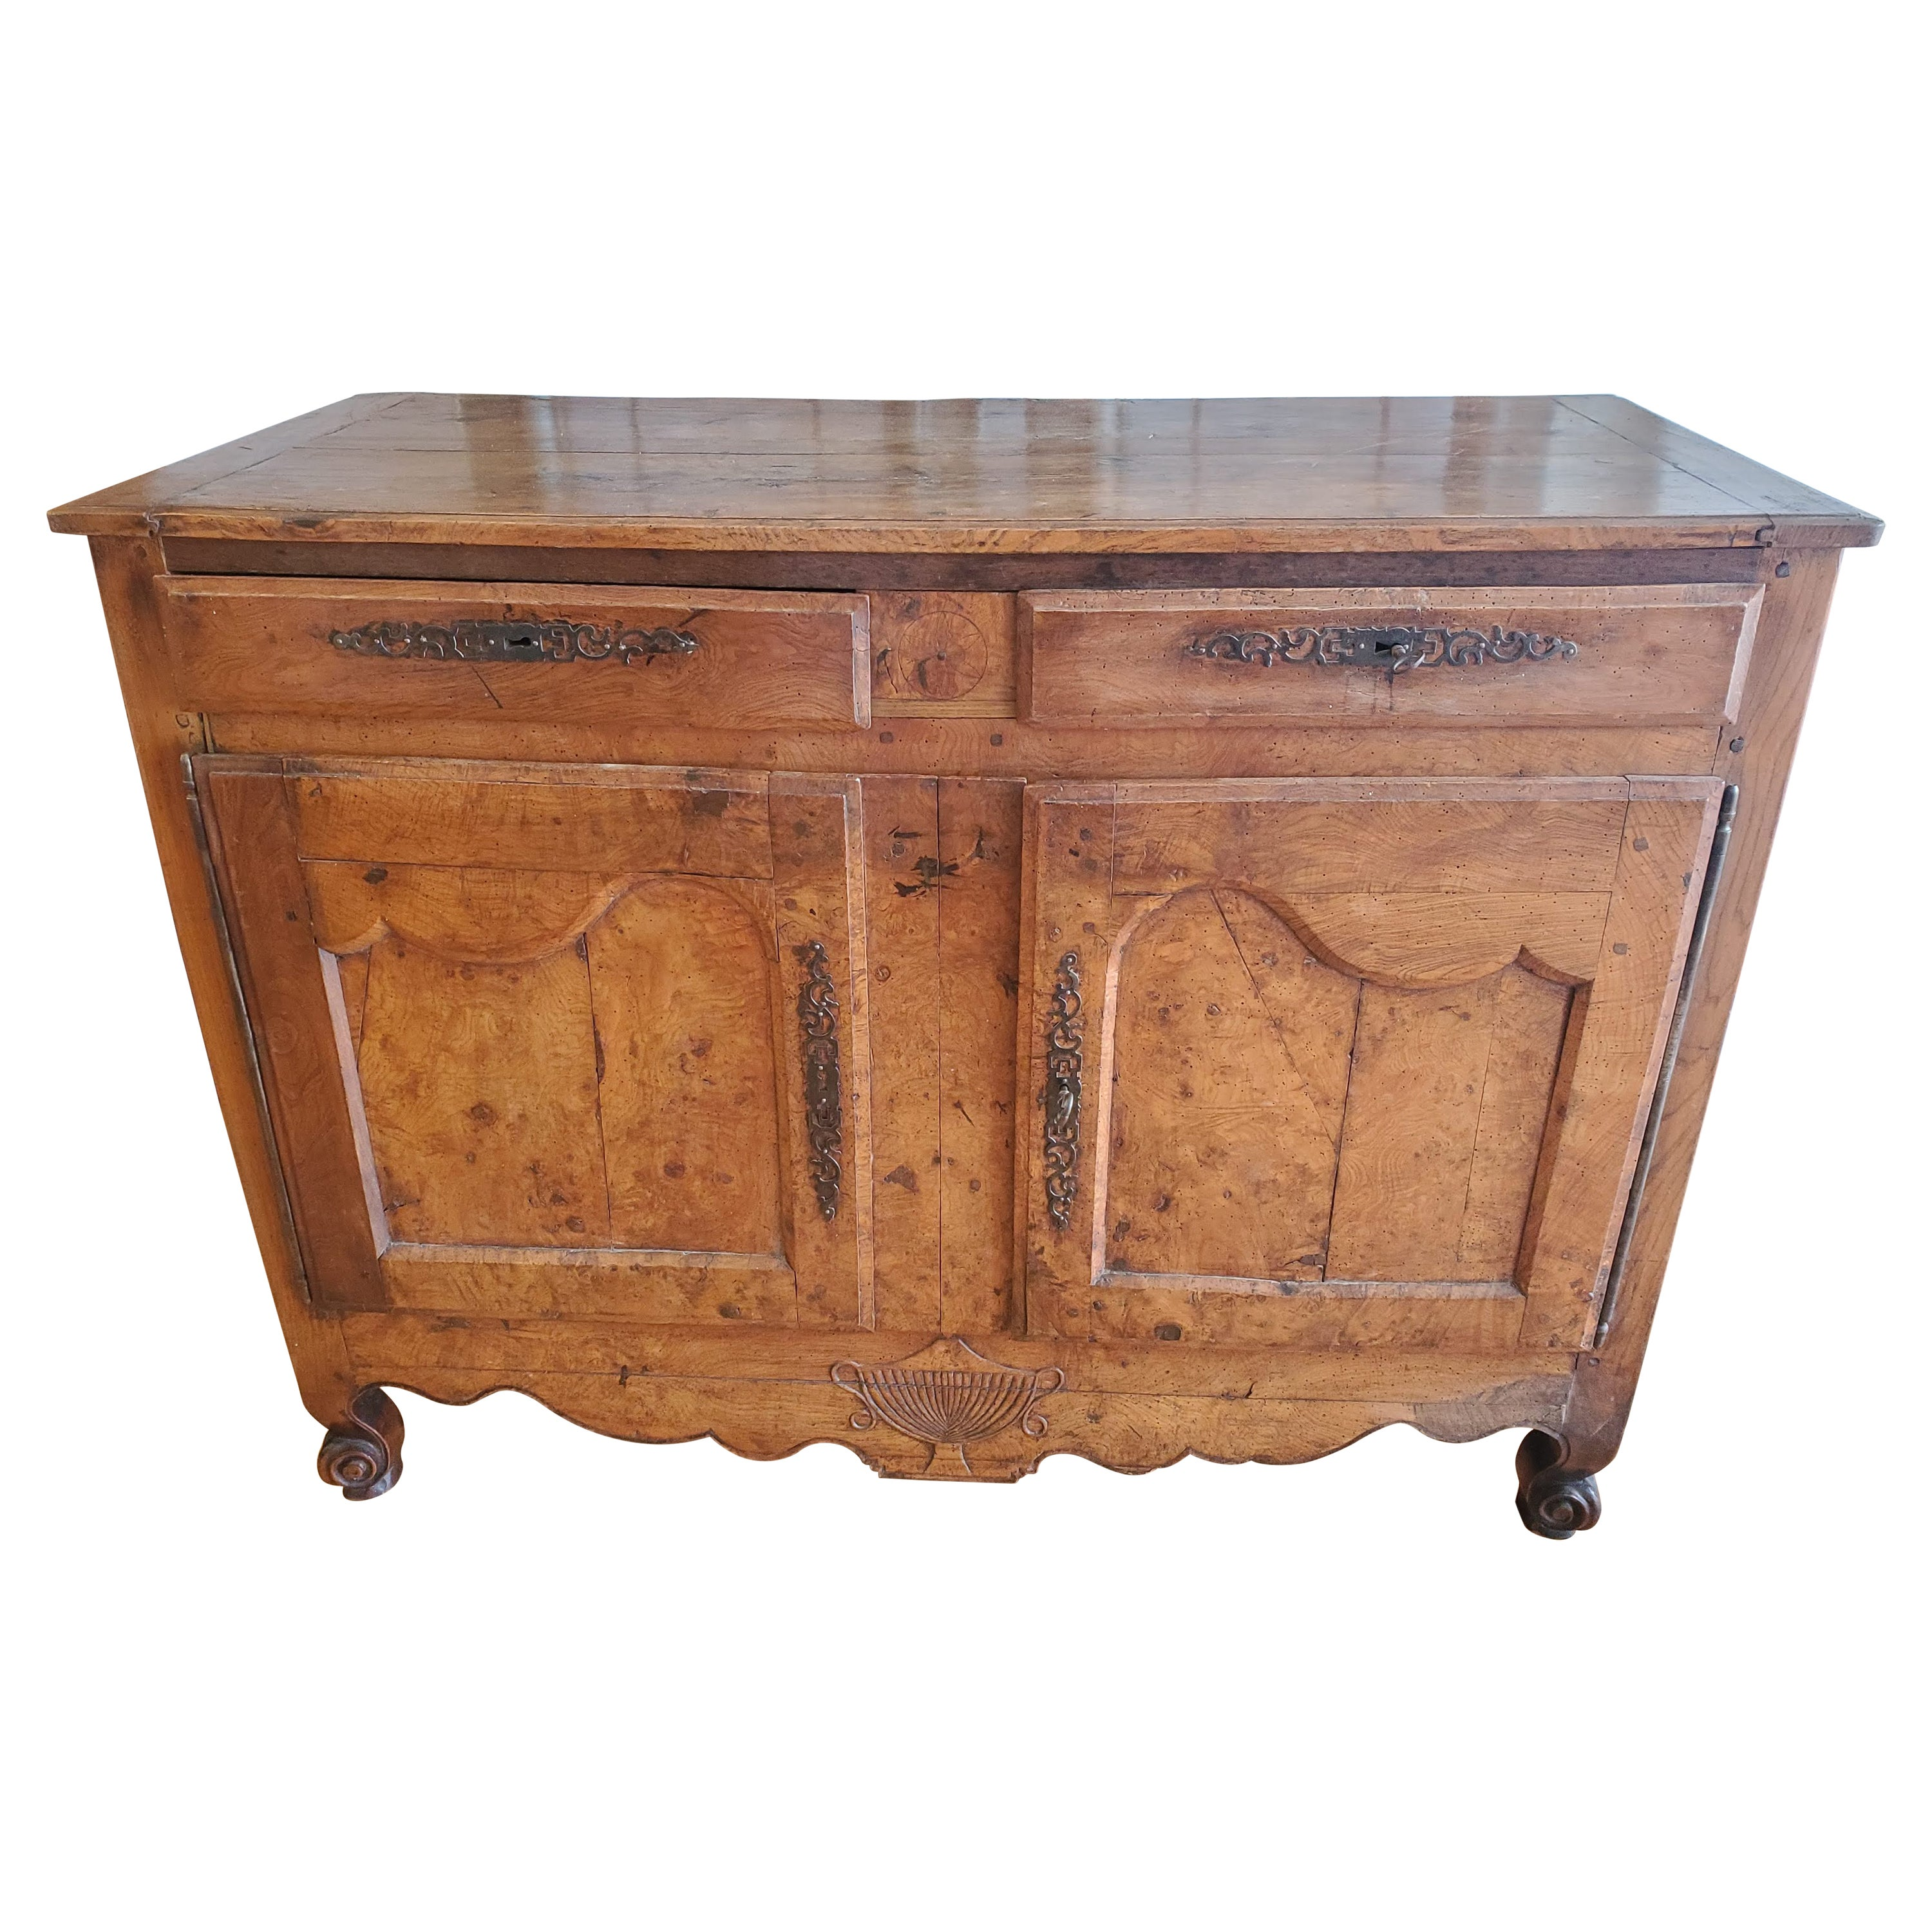 Early 19th Century French Provincial Burled Ash Buffet